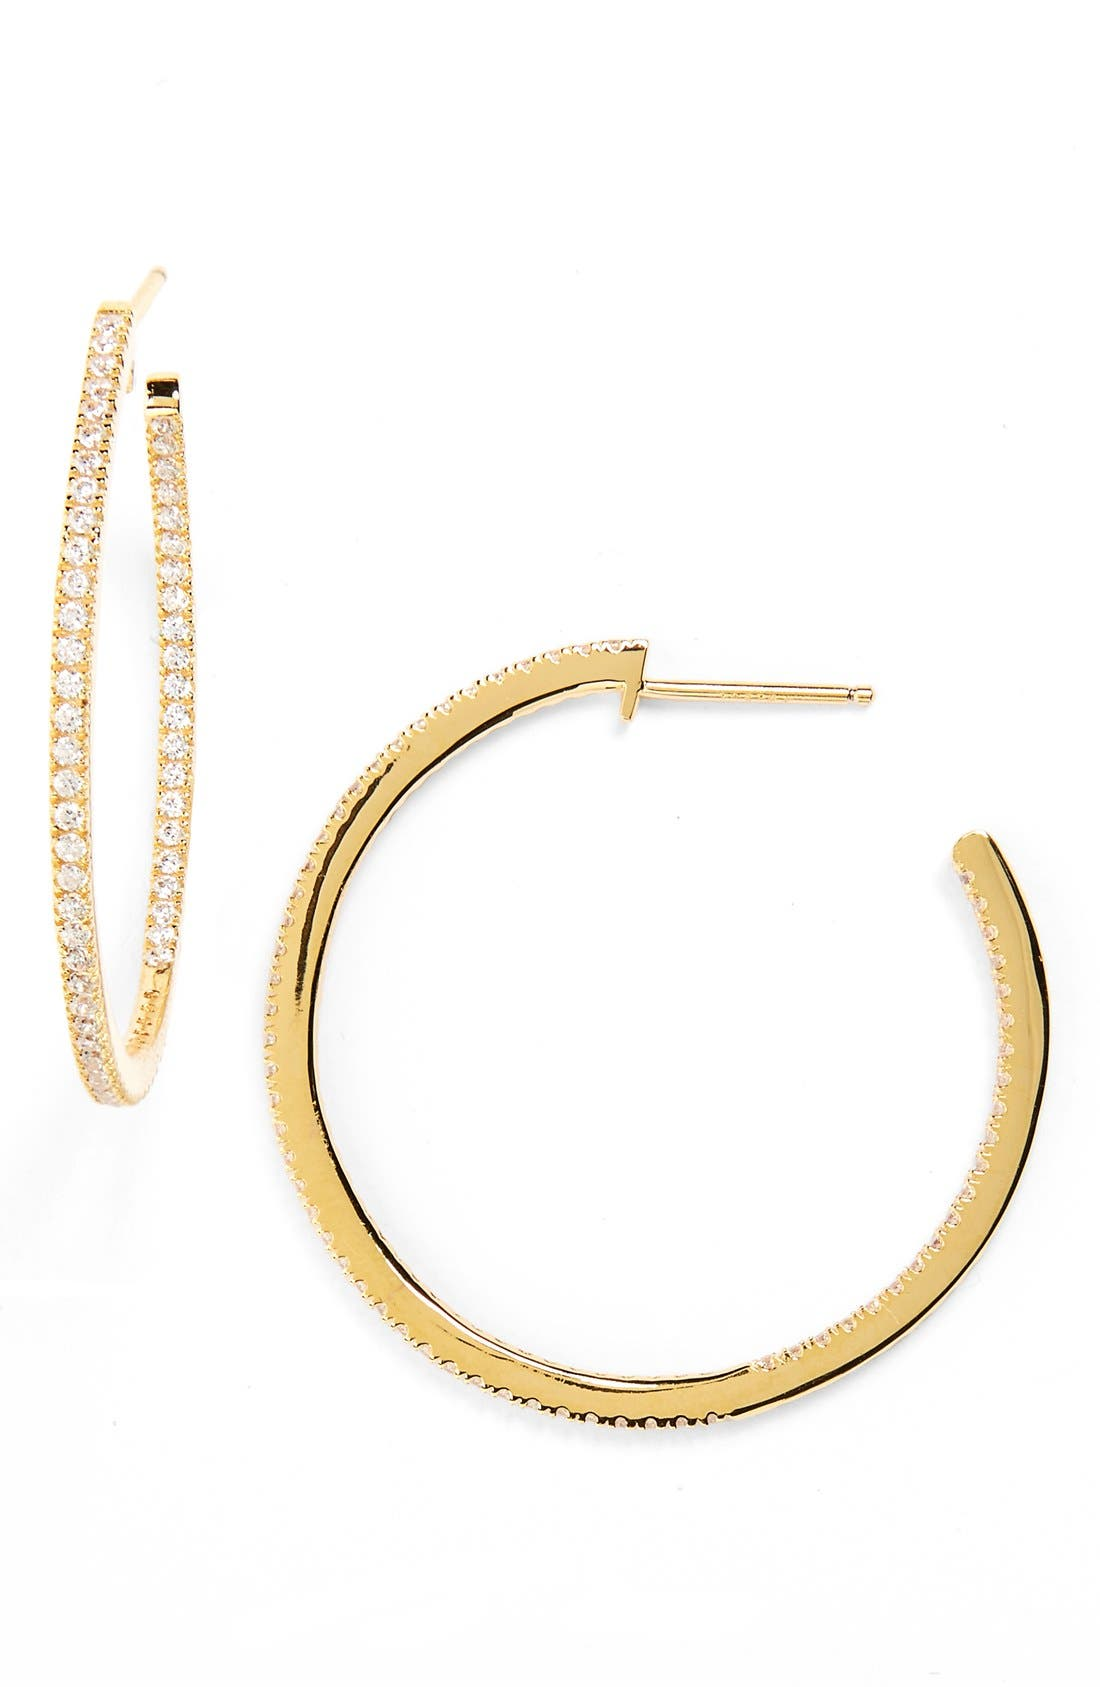 Inside Out Hoop Earrings,                         Main,                         color, CLEAR- GOLD